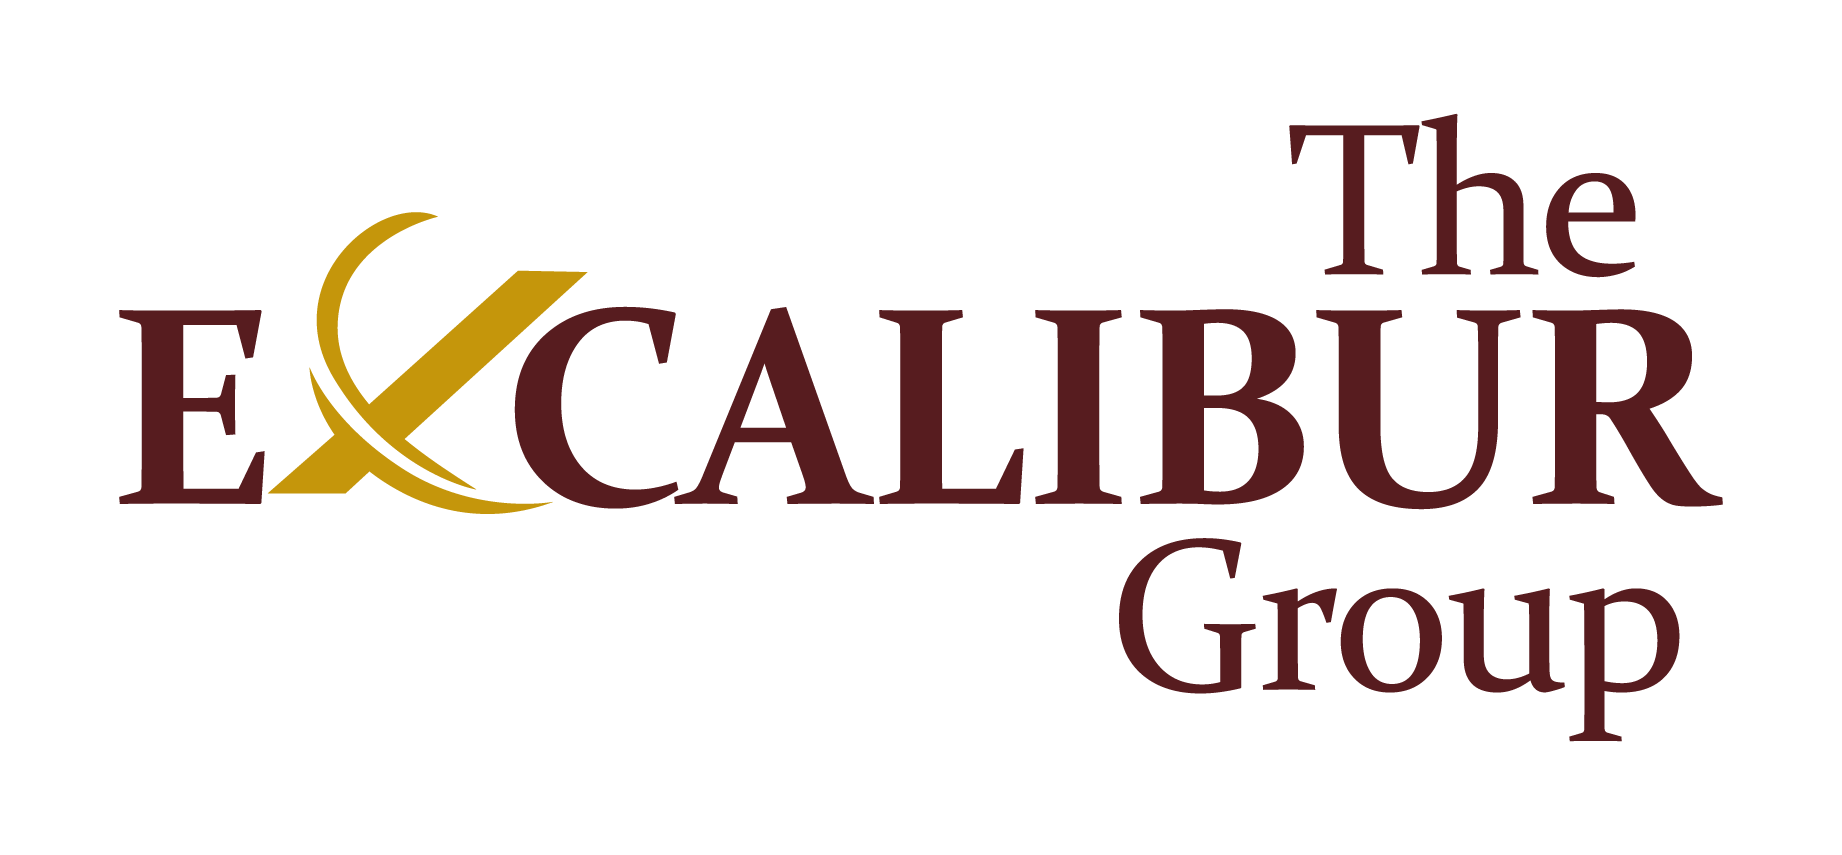 The Excalibur Group Jobs